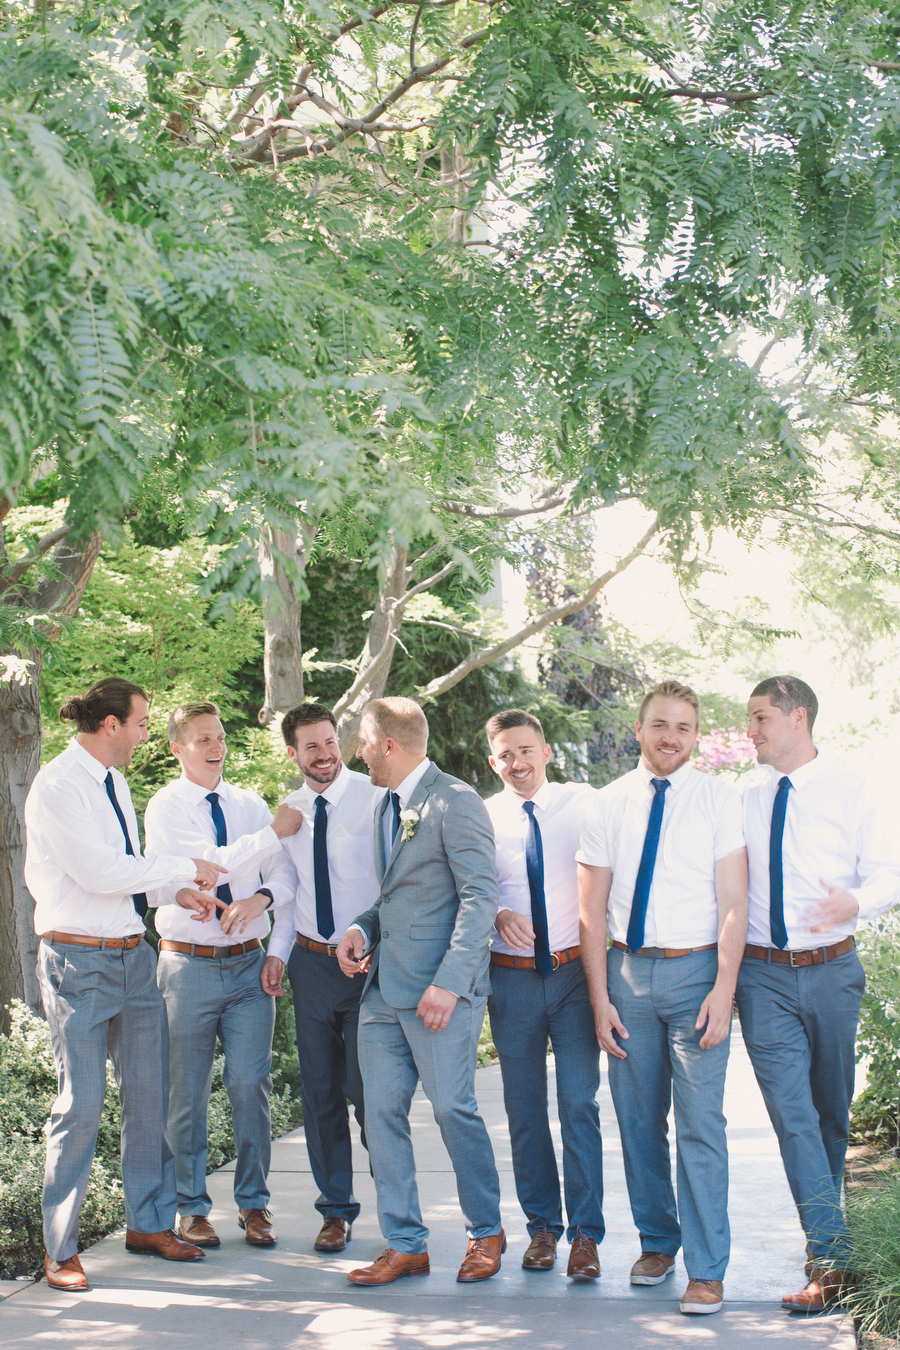 MARIACORONAPHOTOGRAPHY_WEDDING_UTAH_0200.JPG